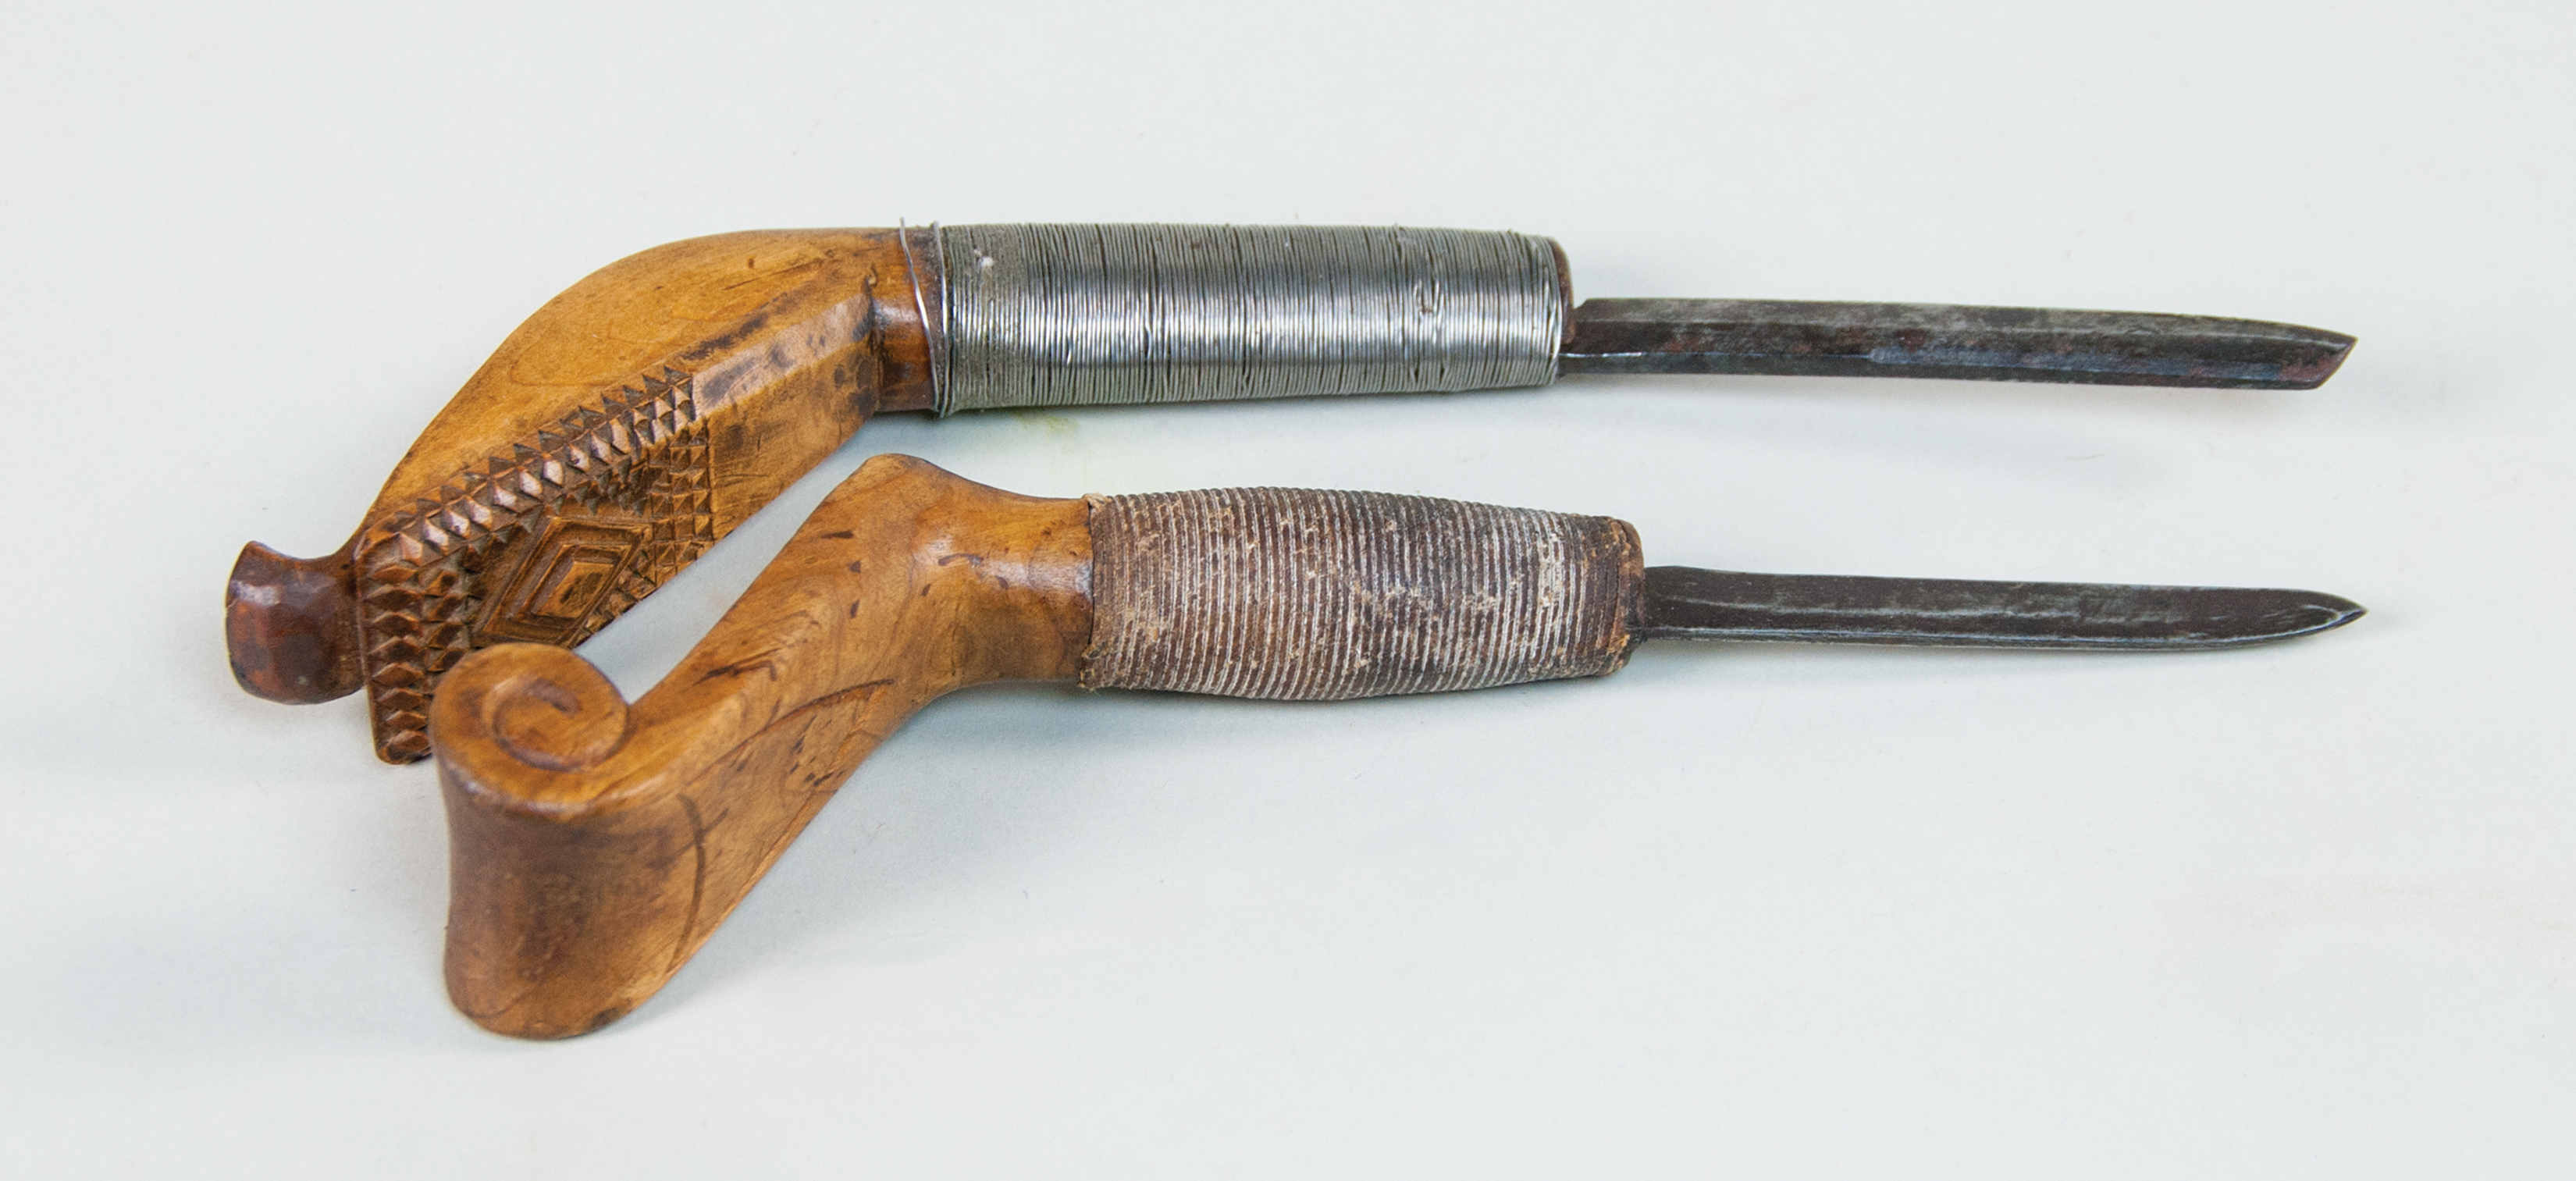 decoys, crooked, knives